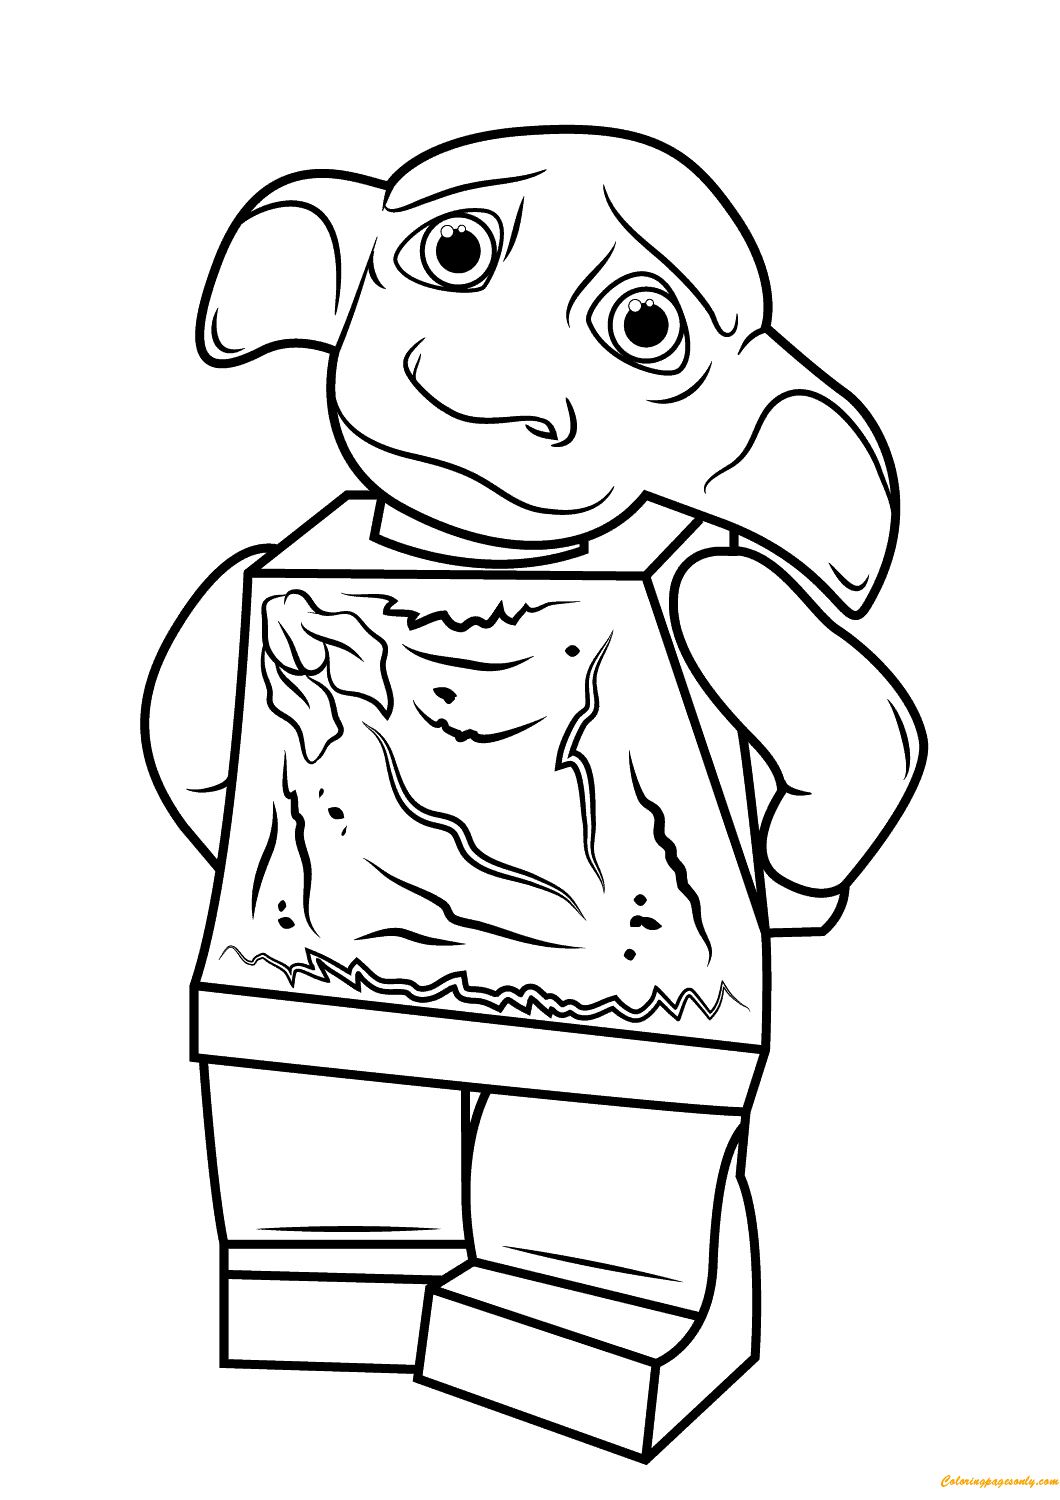 Harry Potter Dobby Coloring Pages At Getcolorings